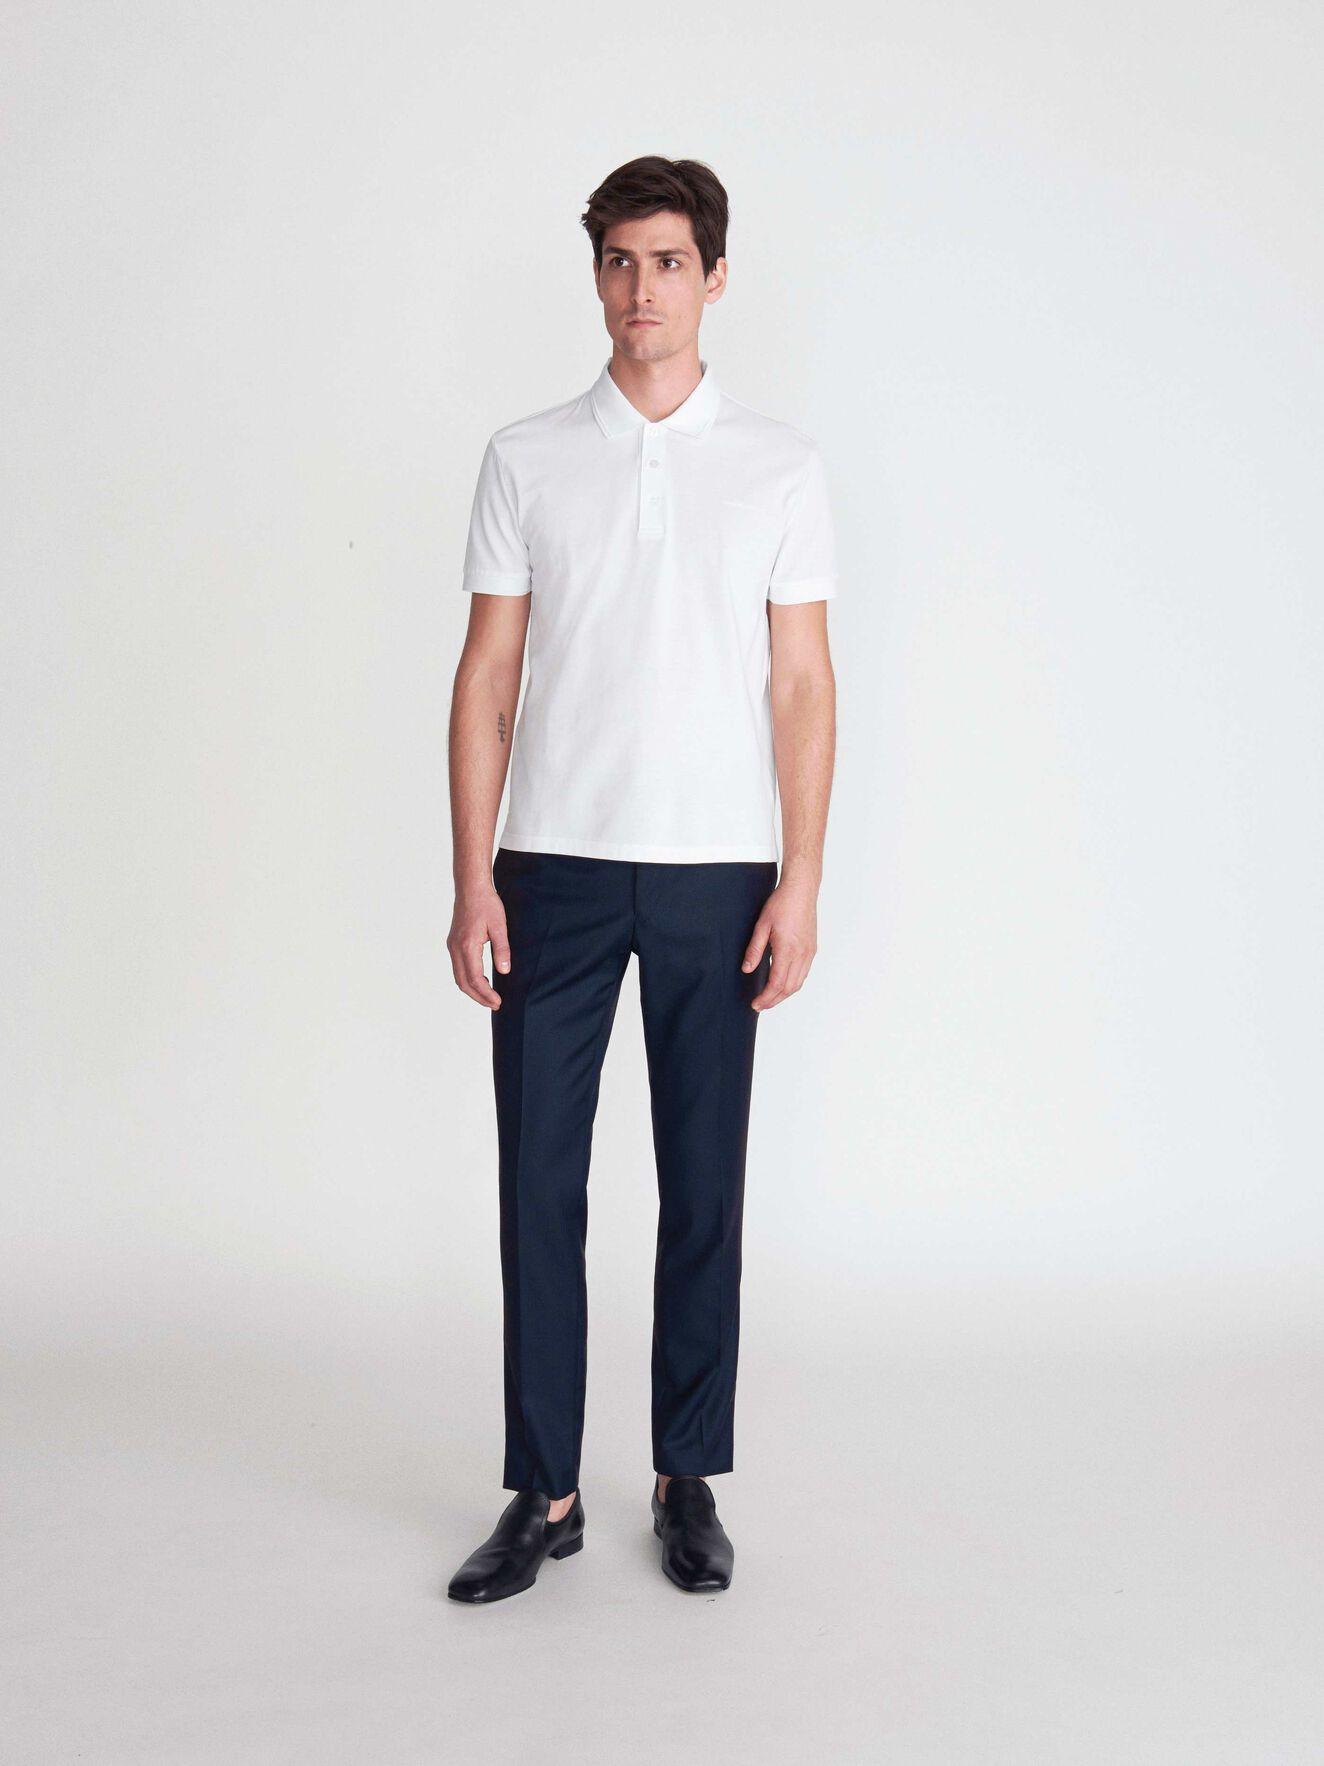 Darios Shirt in Pure white from Tiger of Sweden